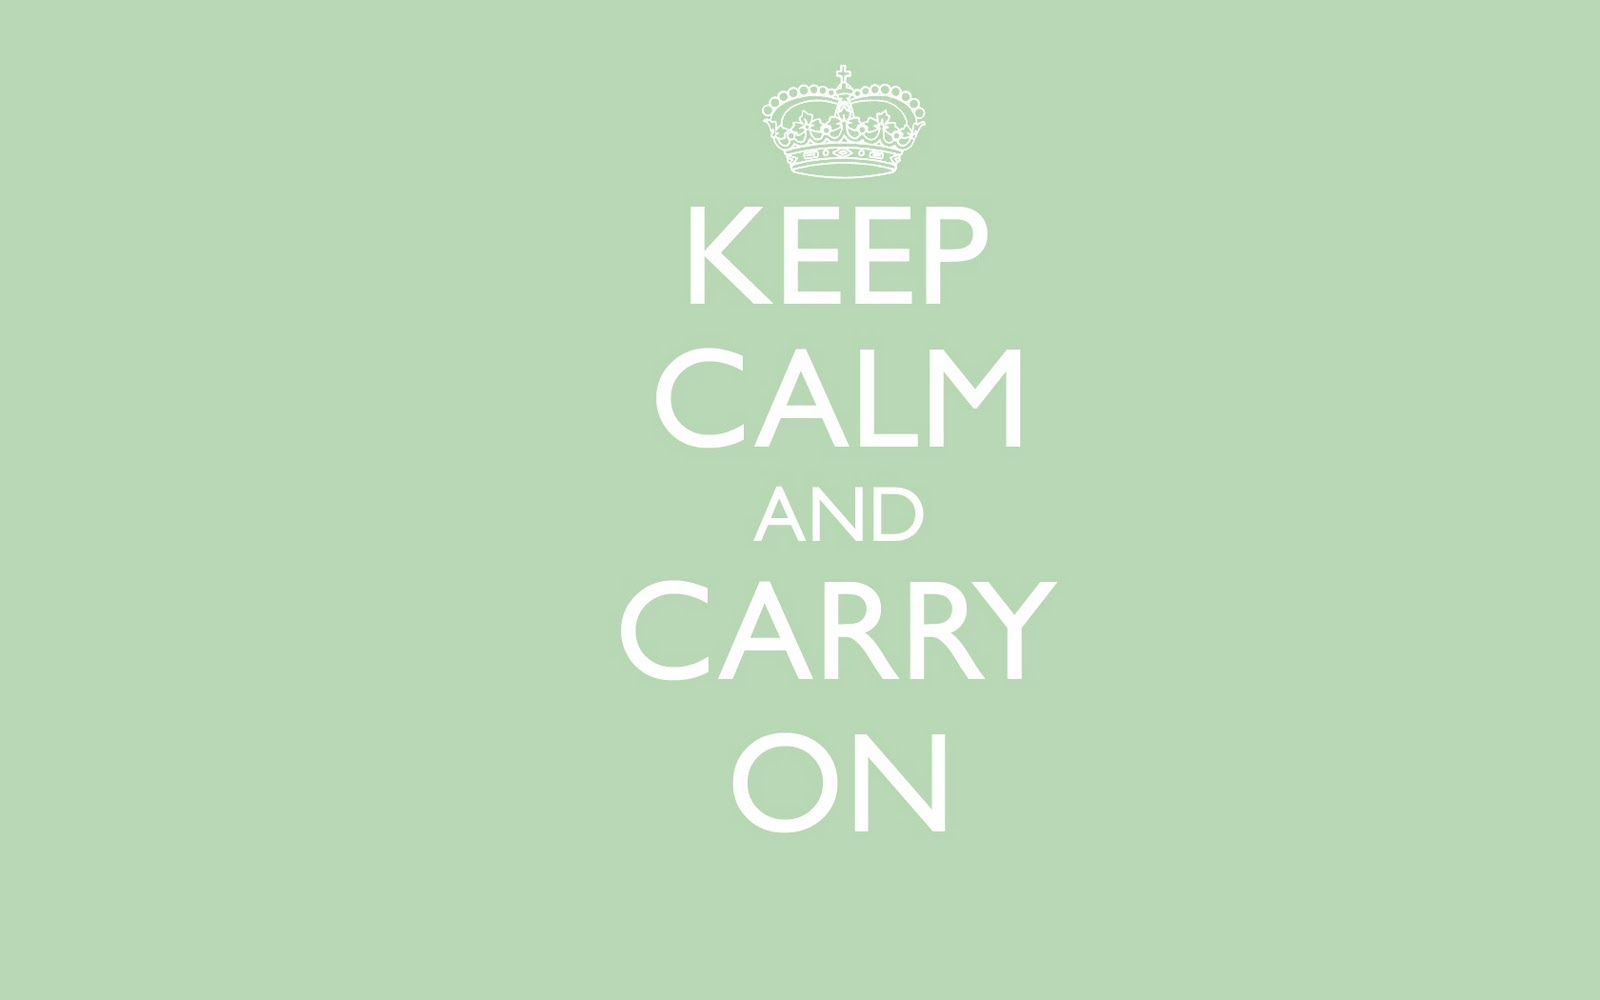 Ls 3d Girl Wallpaper Wallpapers Photo Art Keep Calm And Carry On Wallpaper